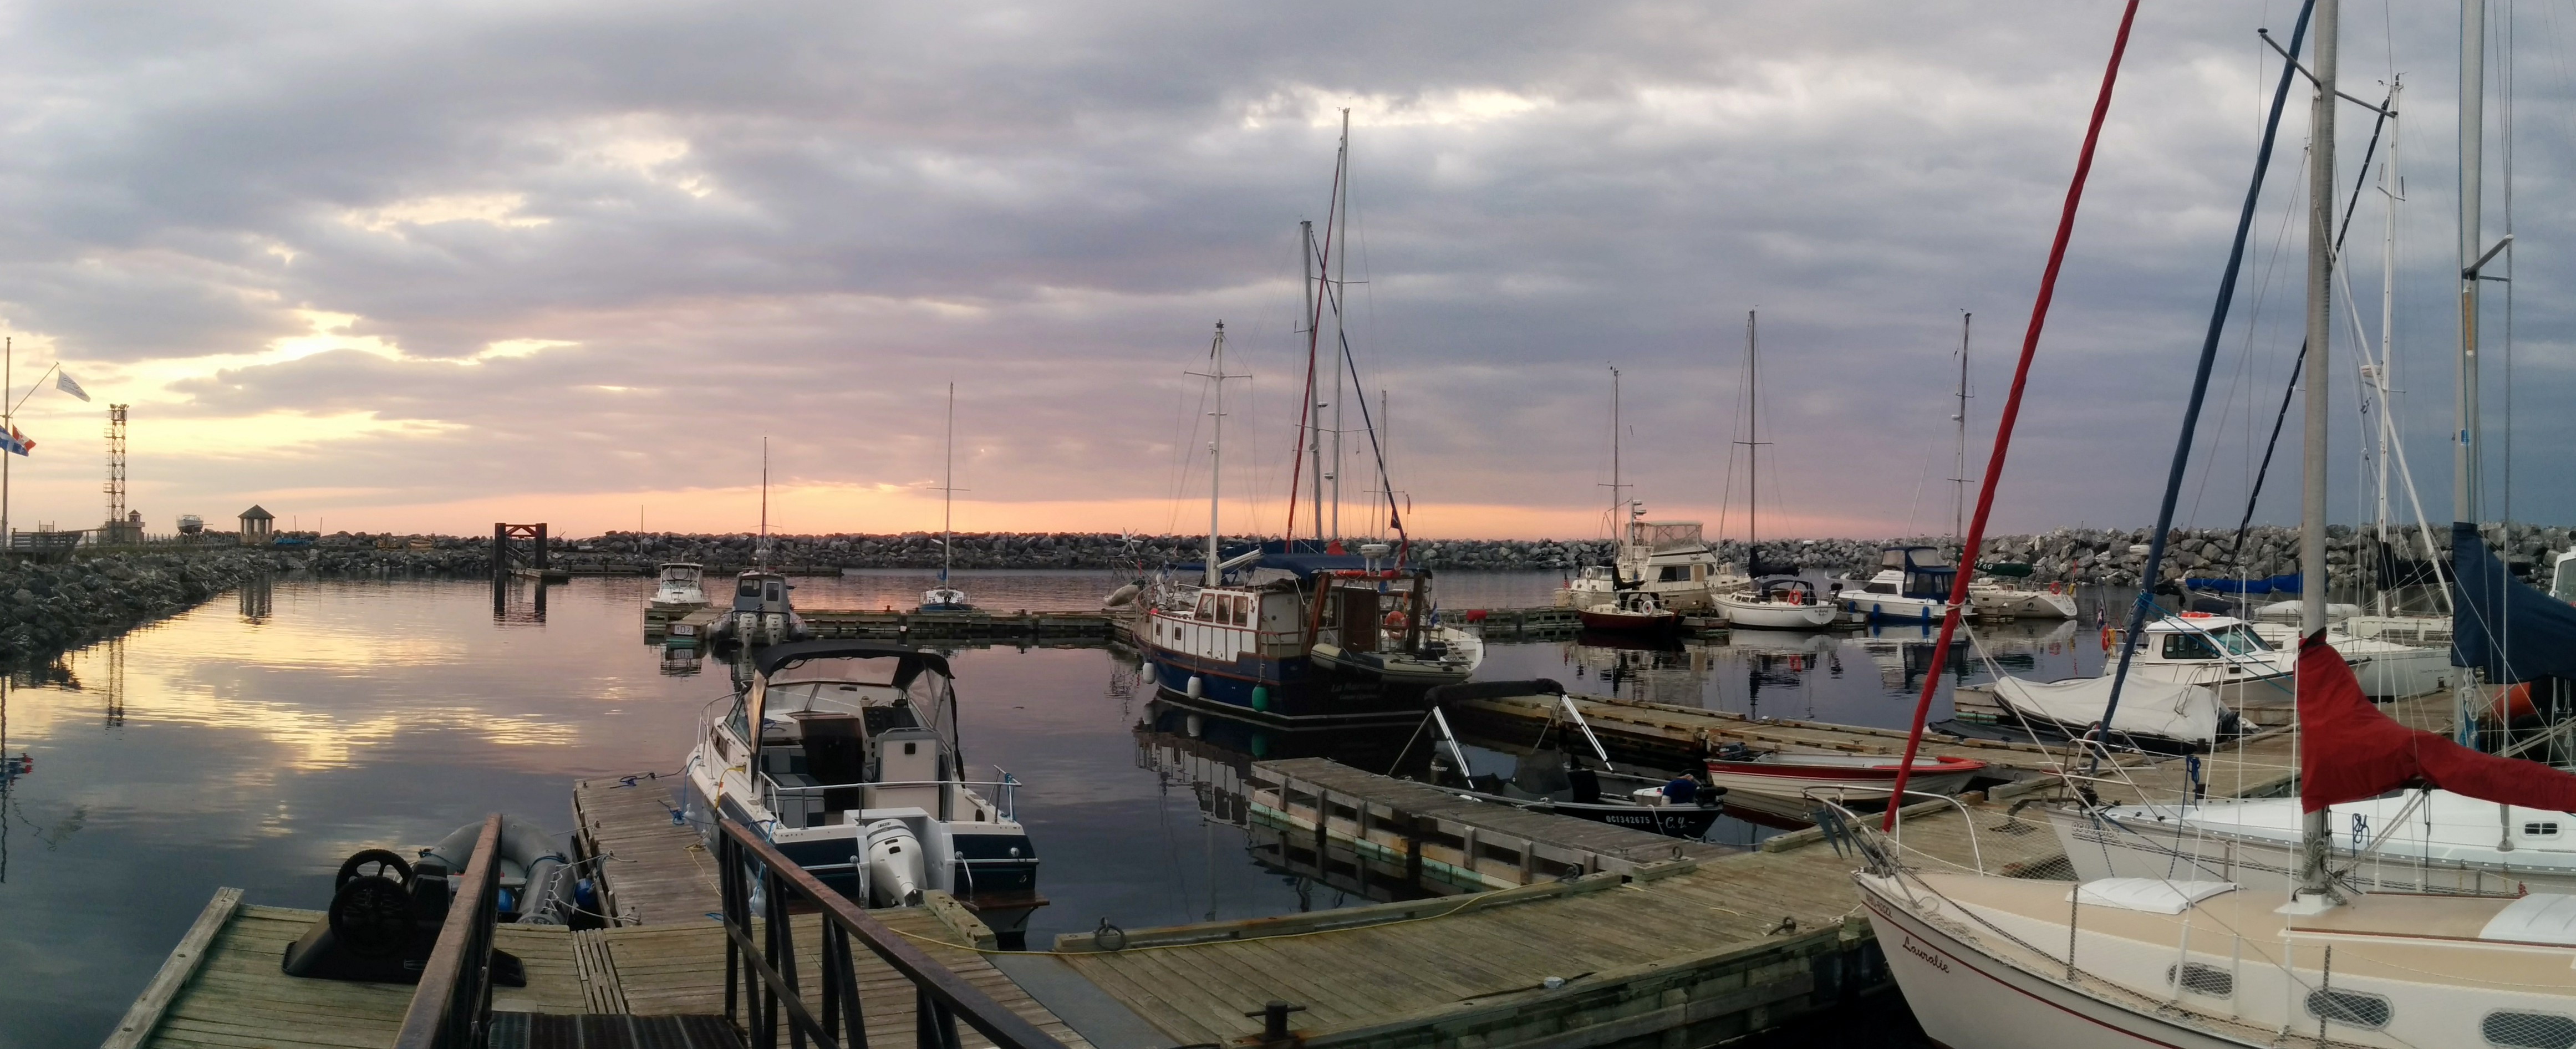 Sunset at Sainte-Anne-des-Monts Marina